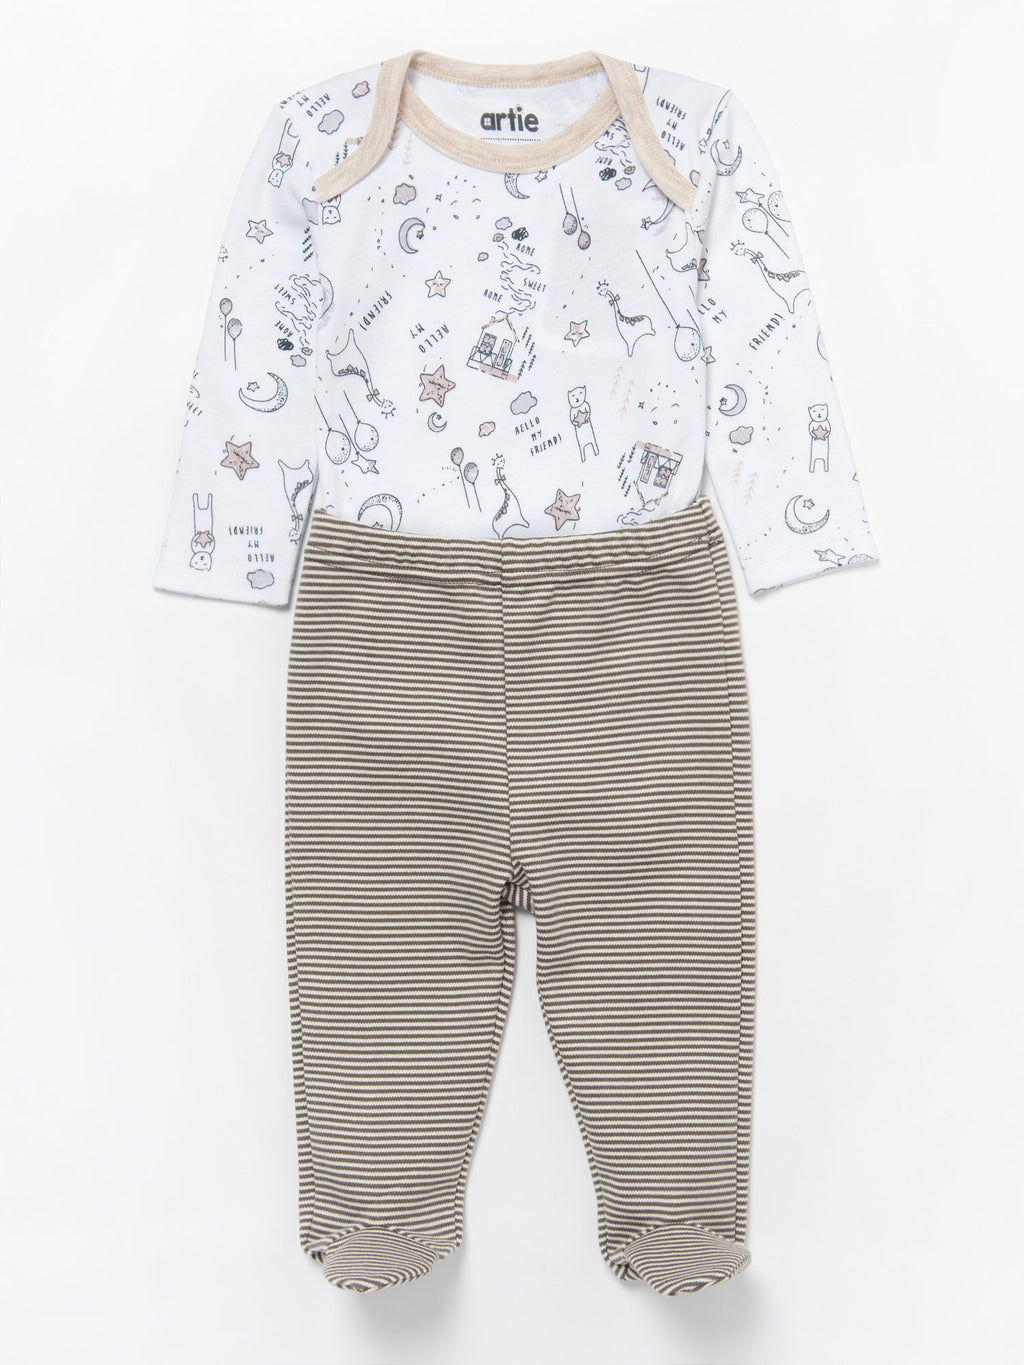 Stripes Footed Leggings - Unisex 0 to 6 months - Stylemykid.com